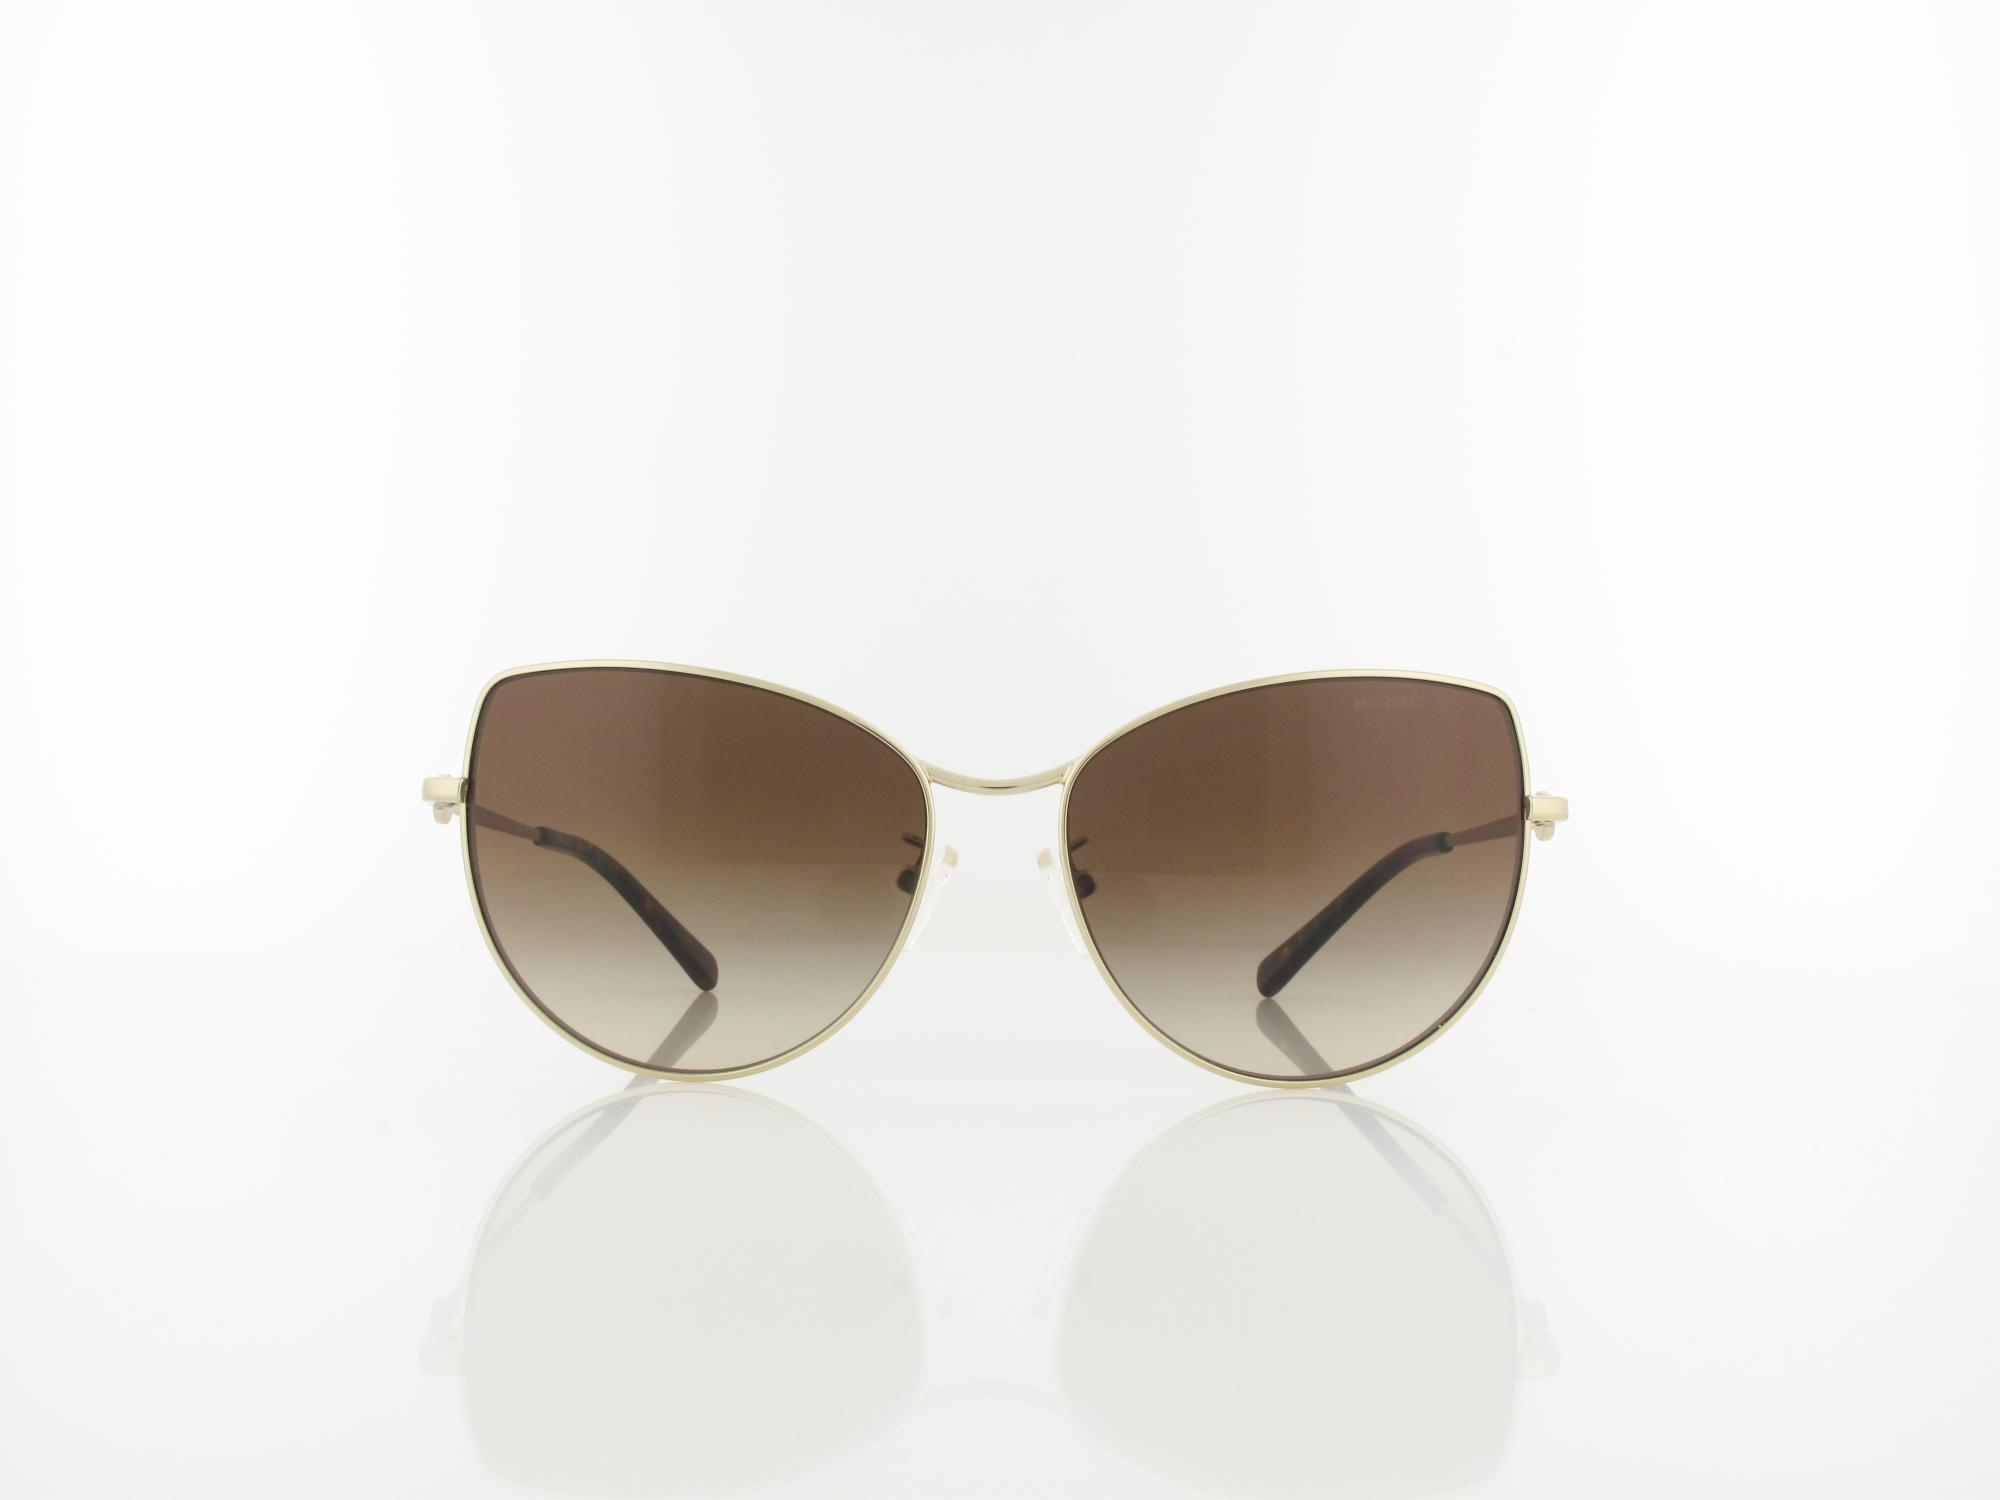 Michael Kors | MK1062 101413 58 | light gold / brown smoke gradient